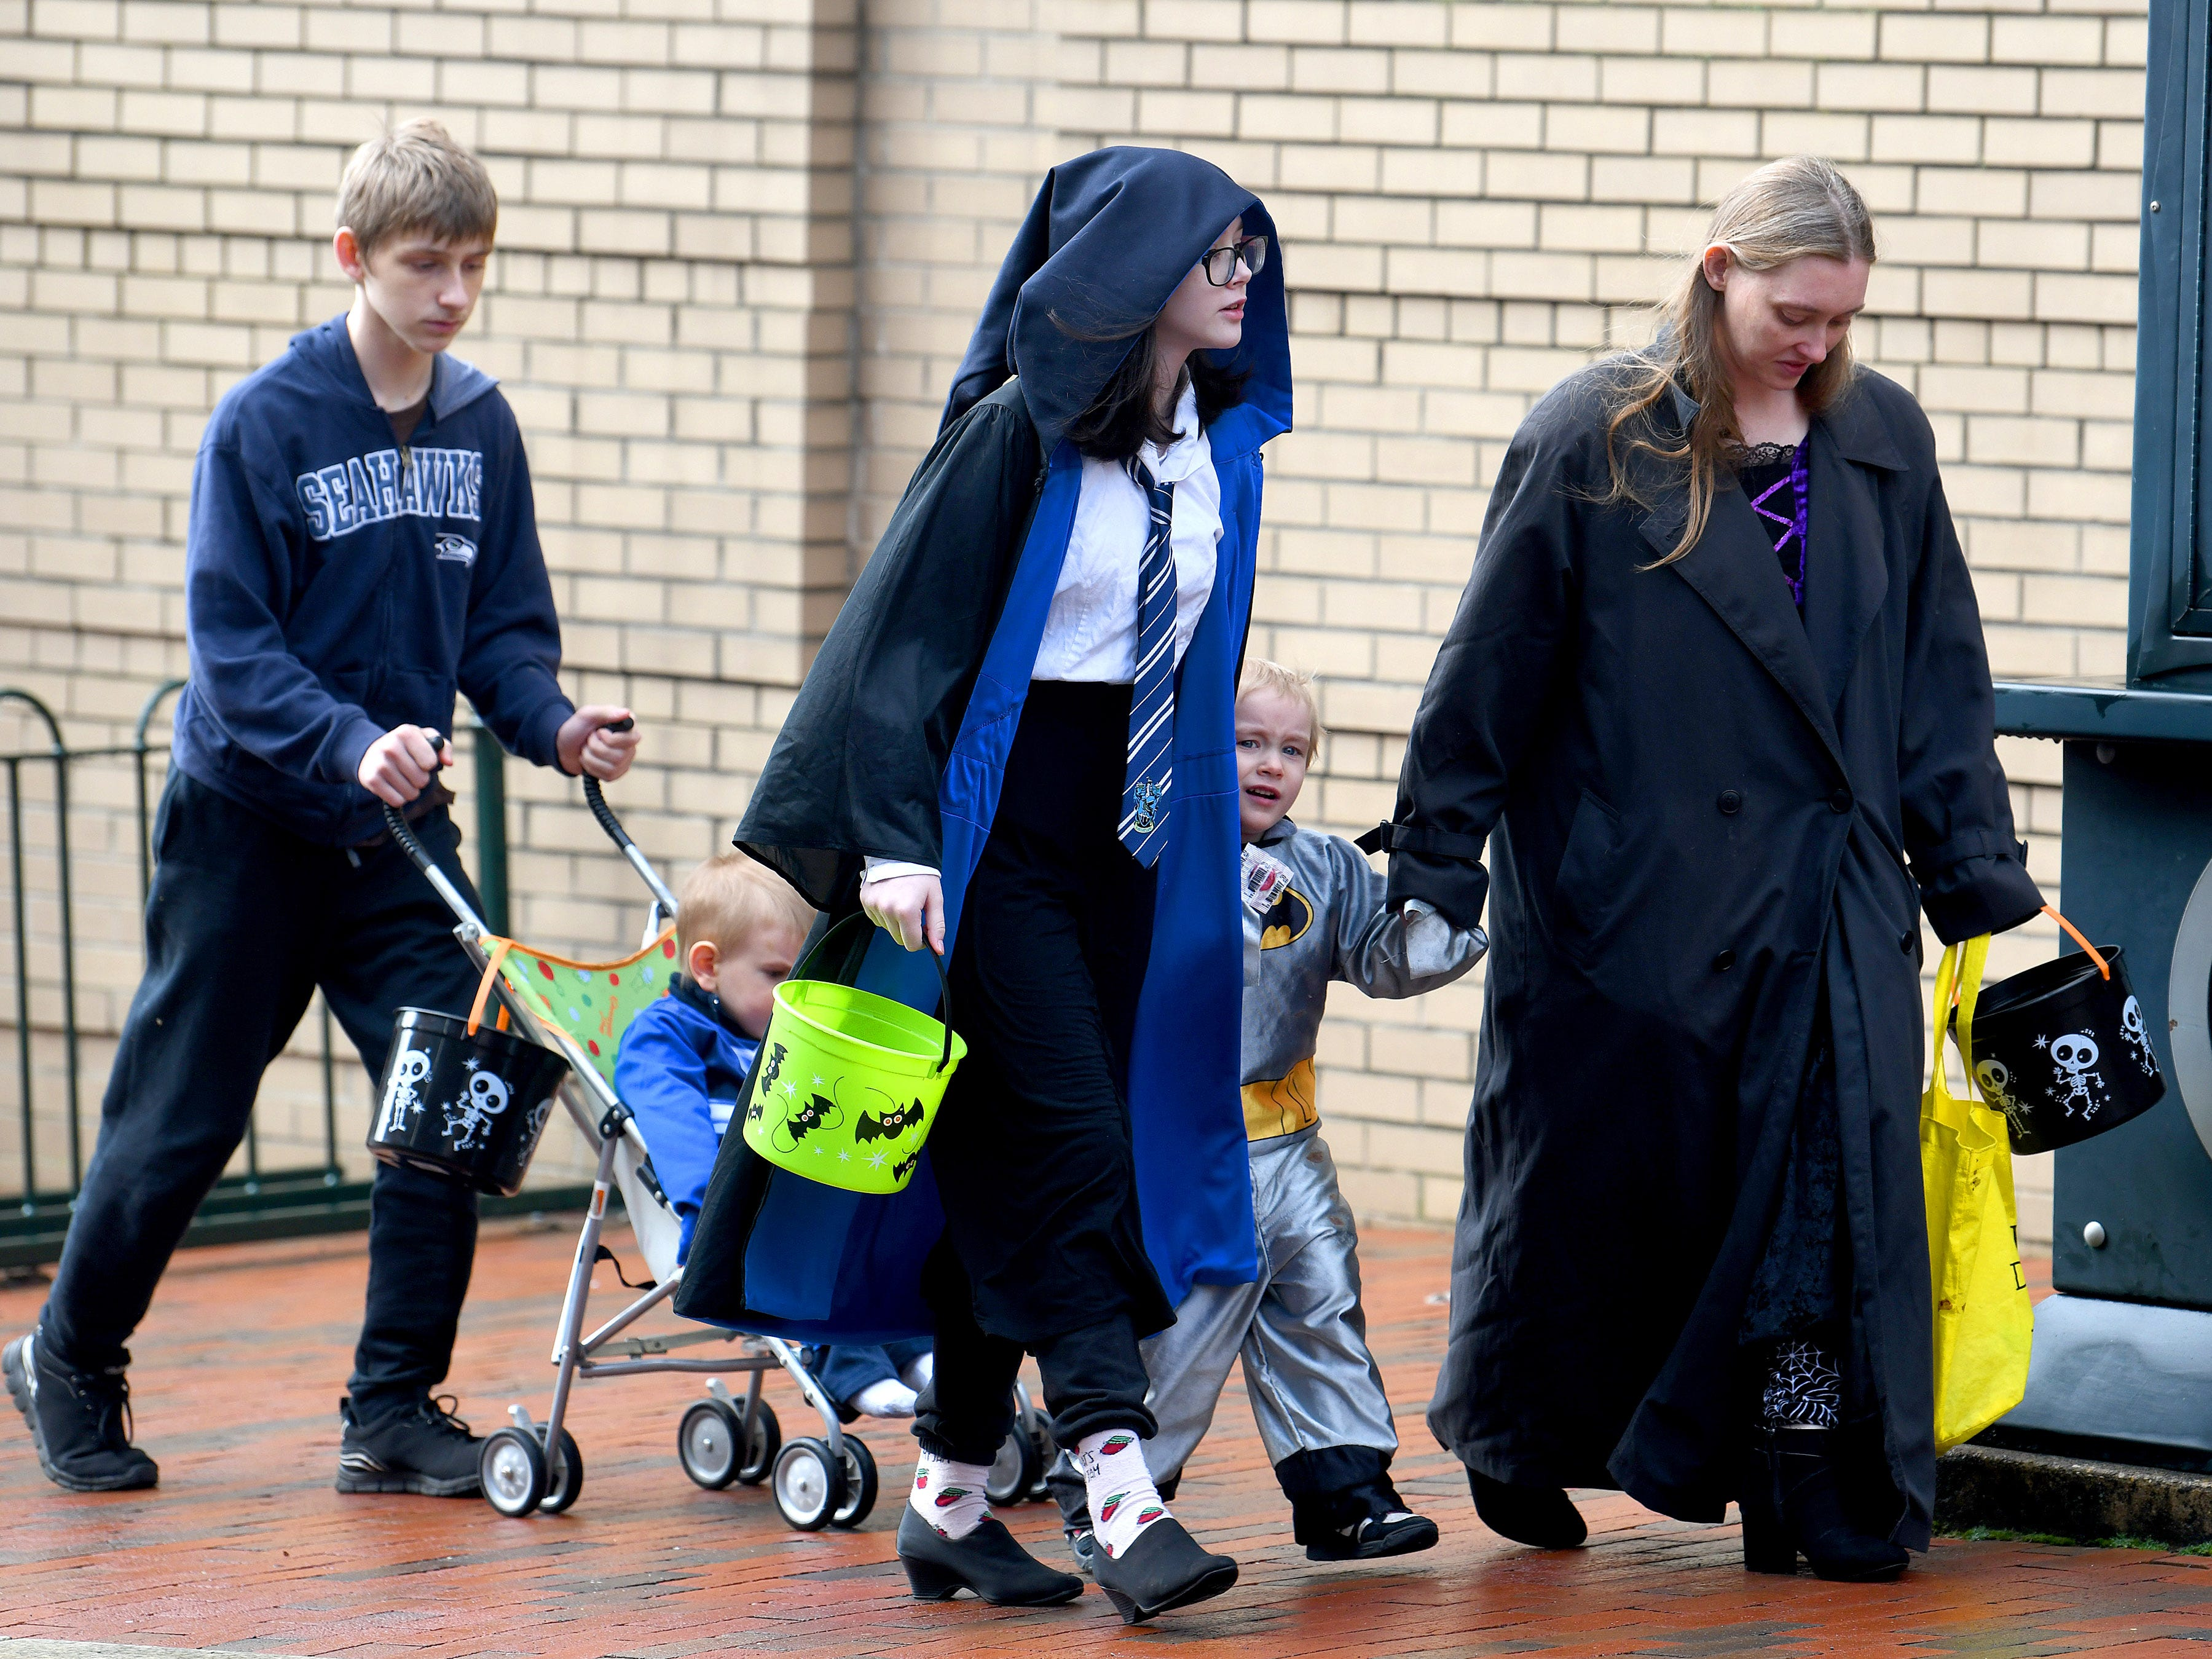 Trick-or-treaters of various ages arrive downtown for the annual downtown trick-or-treating event in Staunton on Saturday, Oct. 27, 2018.